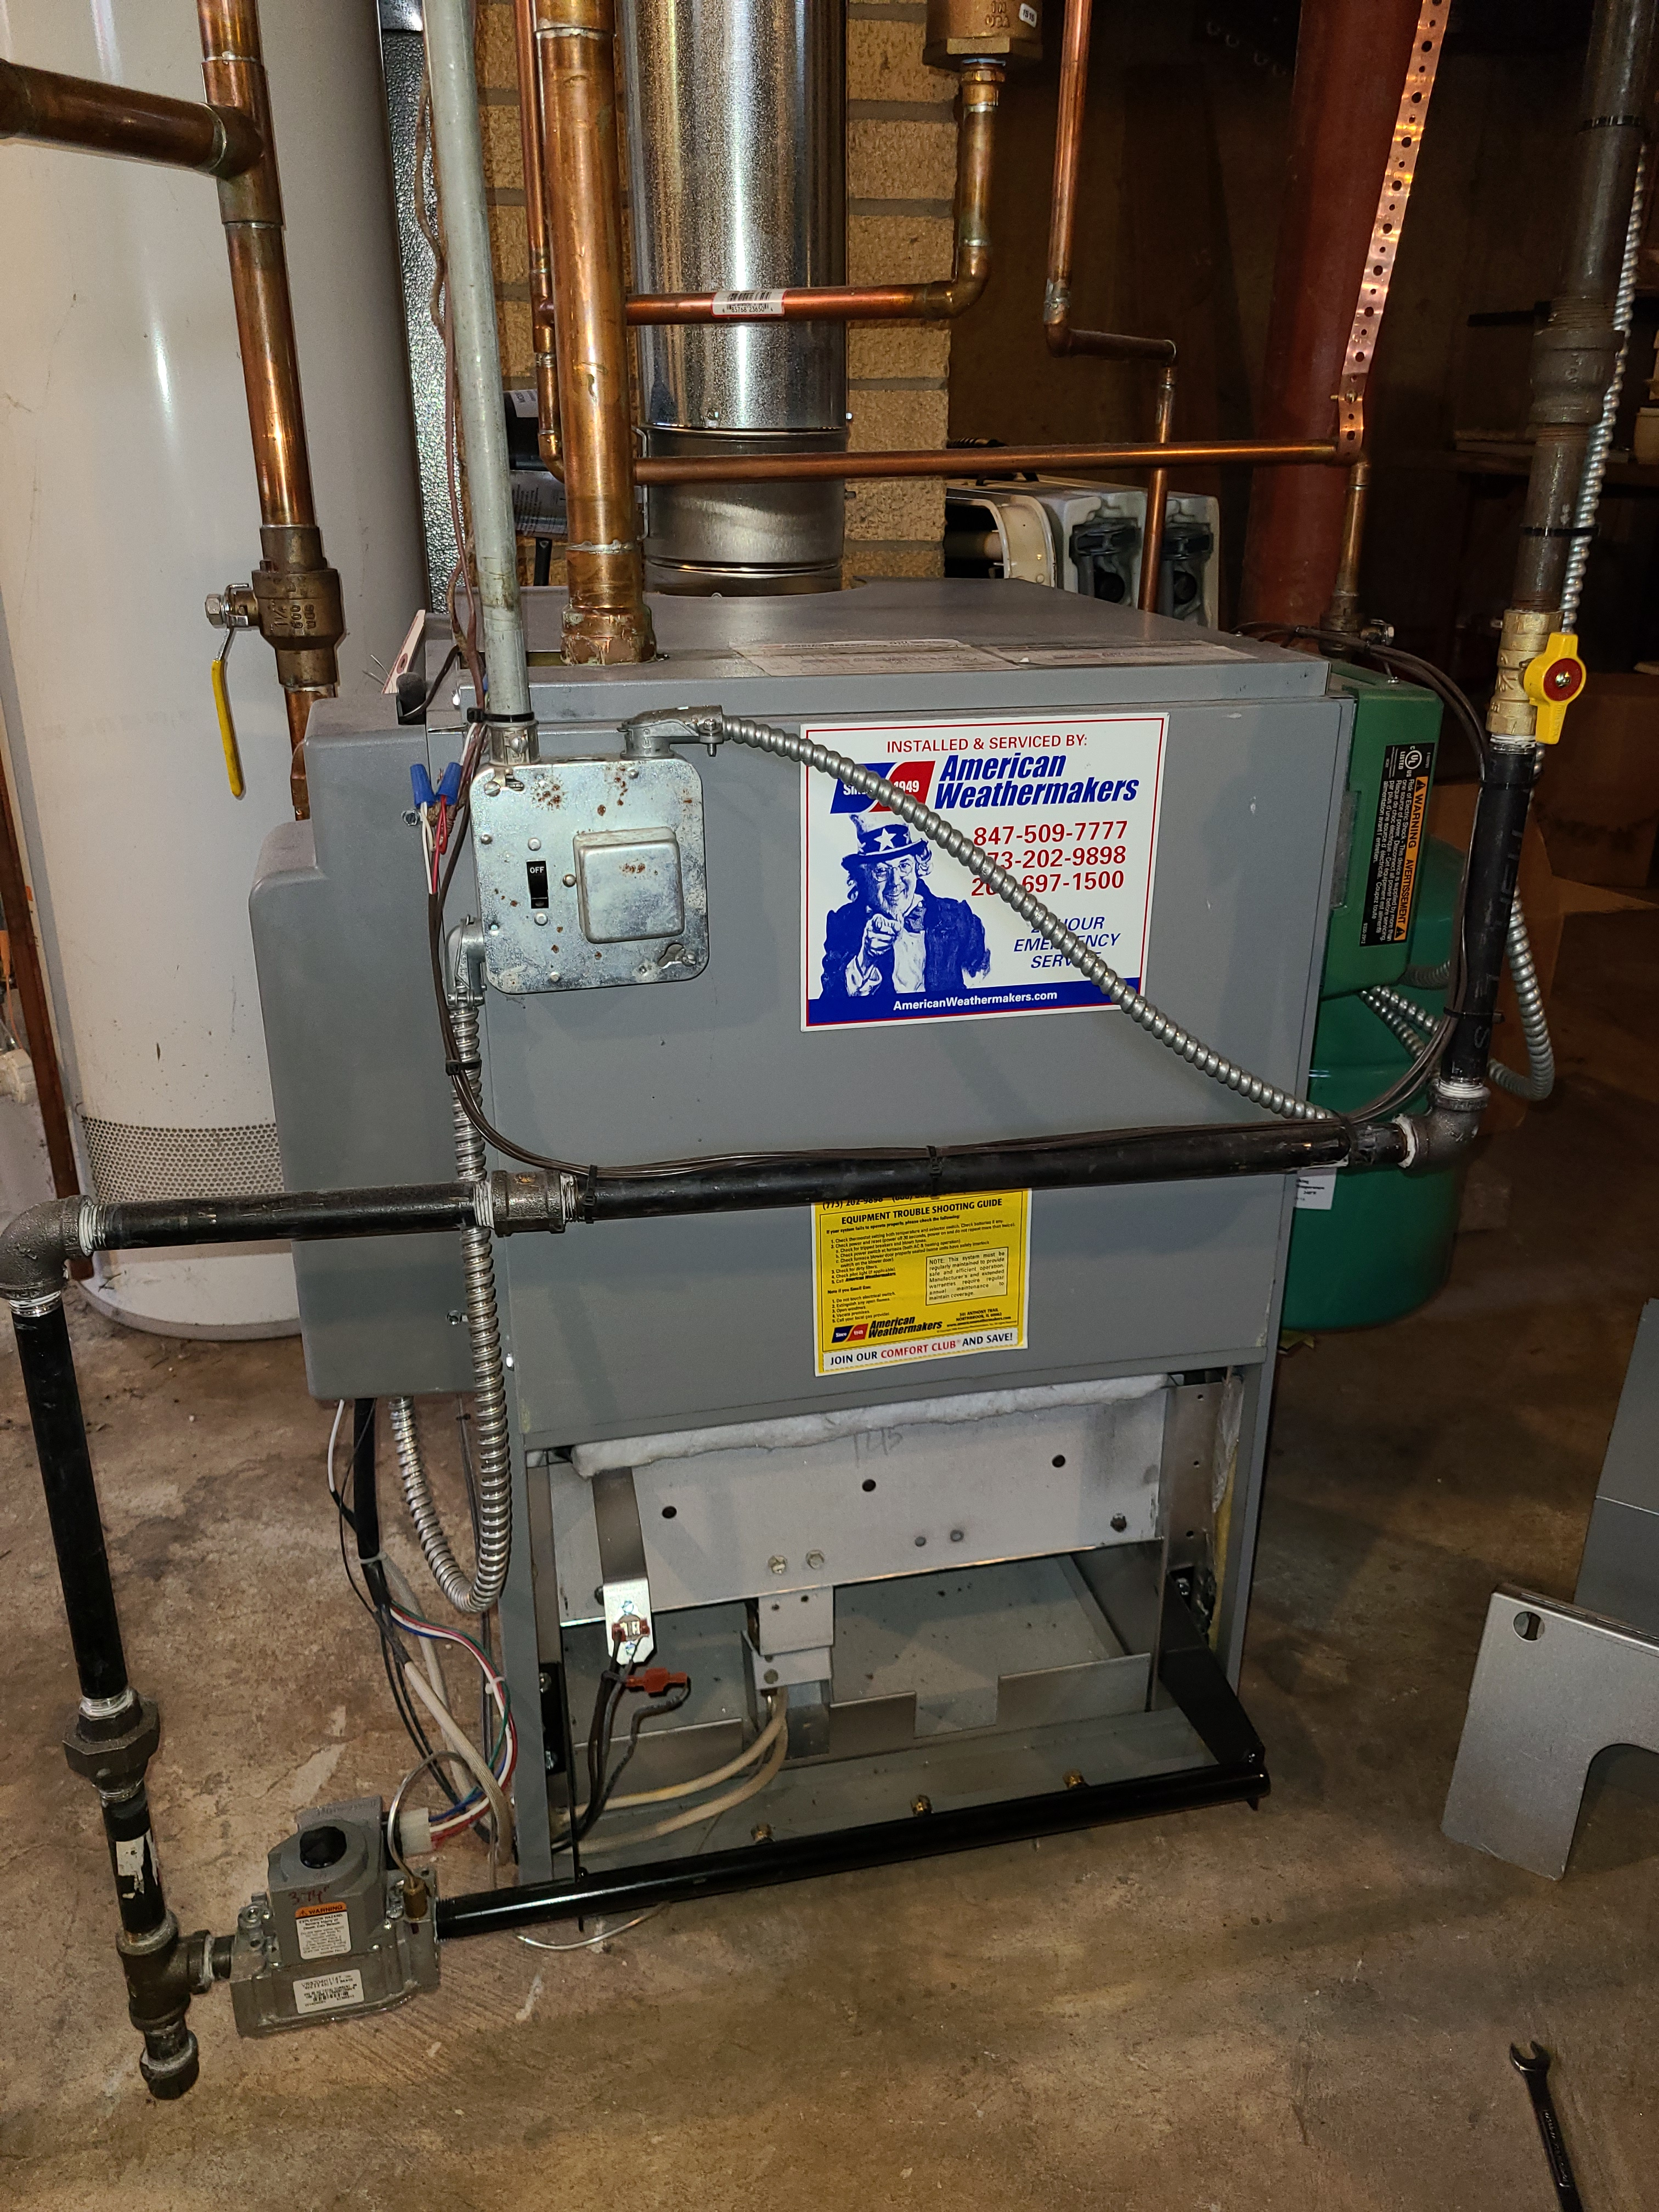 Pennco boiler fall clean and check. System tuned up and ready for winter.